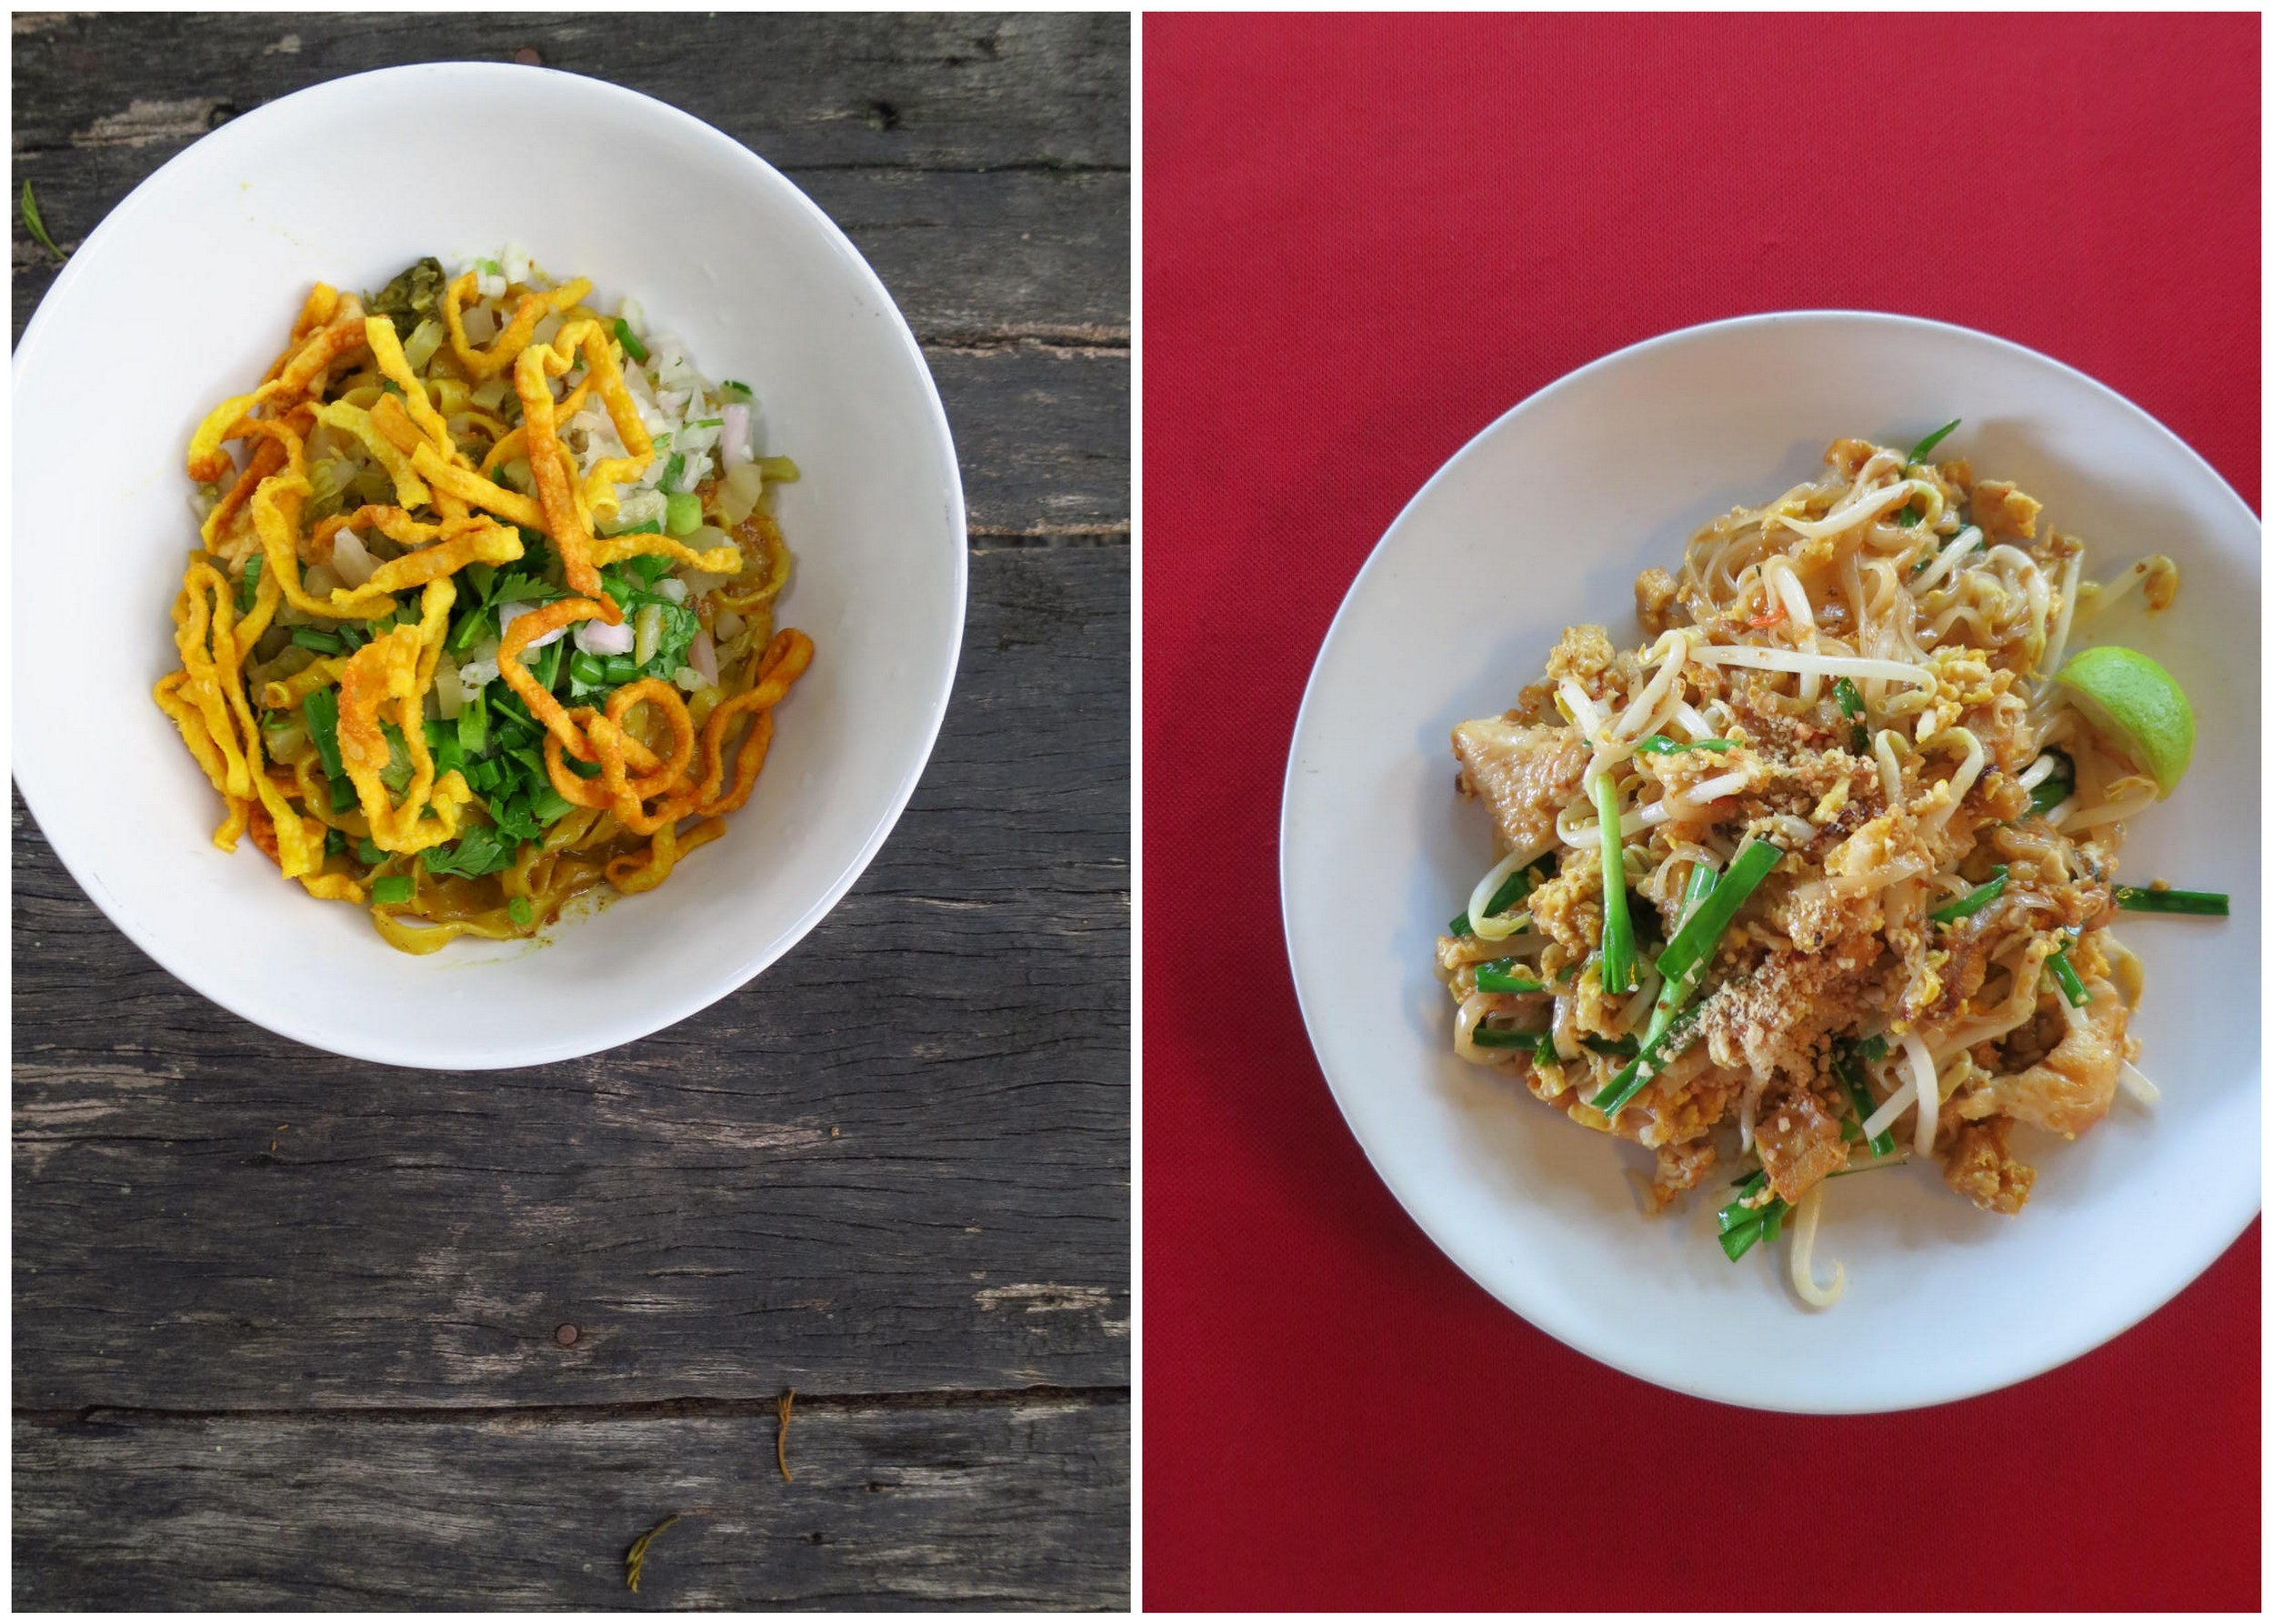 Voila! My first time trying Khao Soi and I instantly fell in love with this regional dish. Coconut milk, curry, and noodles...what more could I ask for? On the right is, of course, Pad Thai because no cooking class is complete without making this.